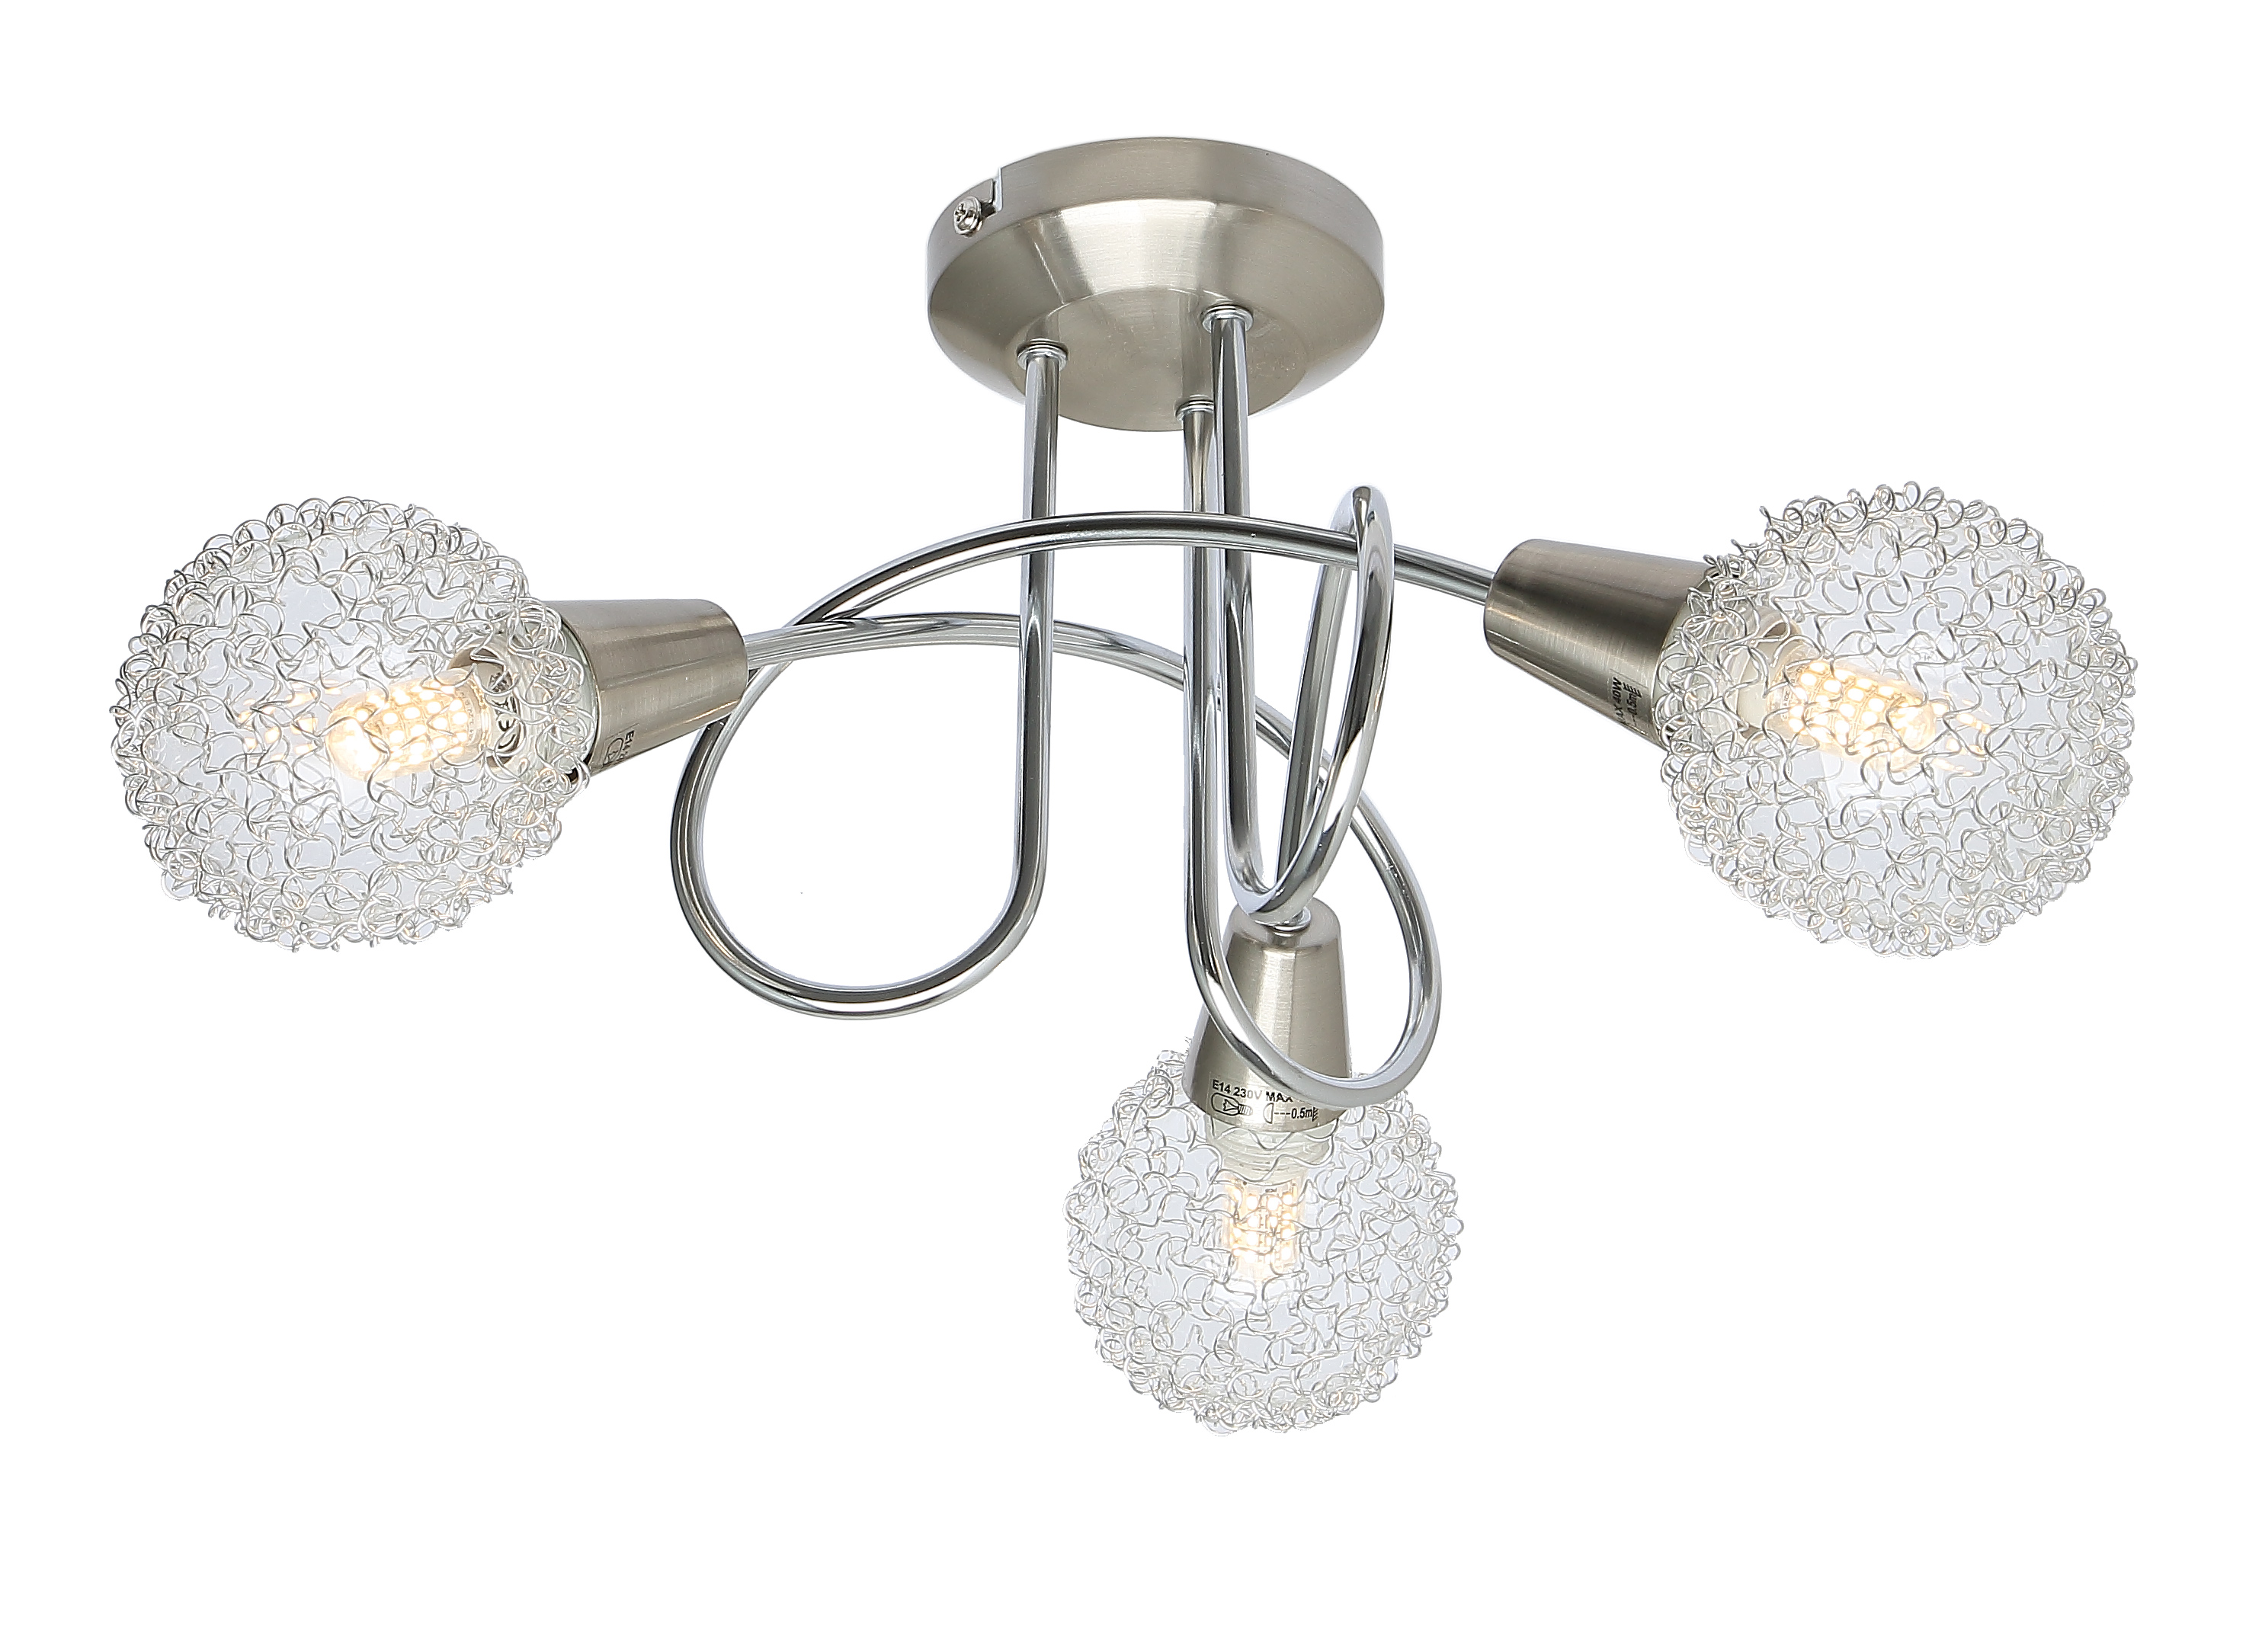 Globe mesh nickelsatin chrome 3 way round ceiling spotlight by ukew globe mesh nickelsatin chrome 3 way round ceiling spotlight by ukew ukew 1990 by ukew aloadofball Image collections